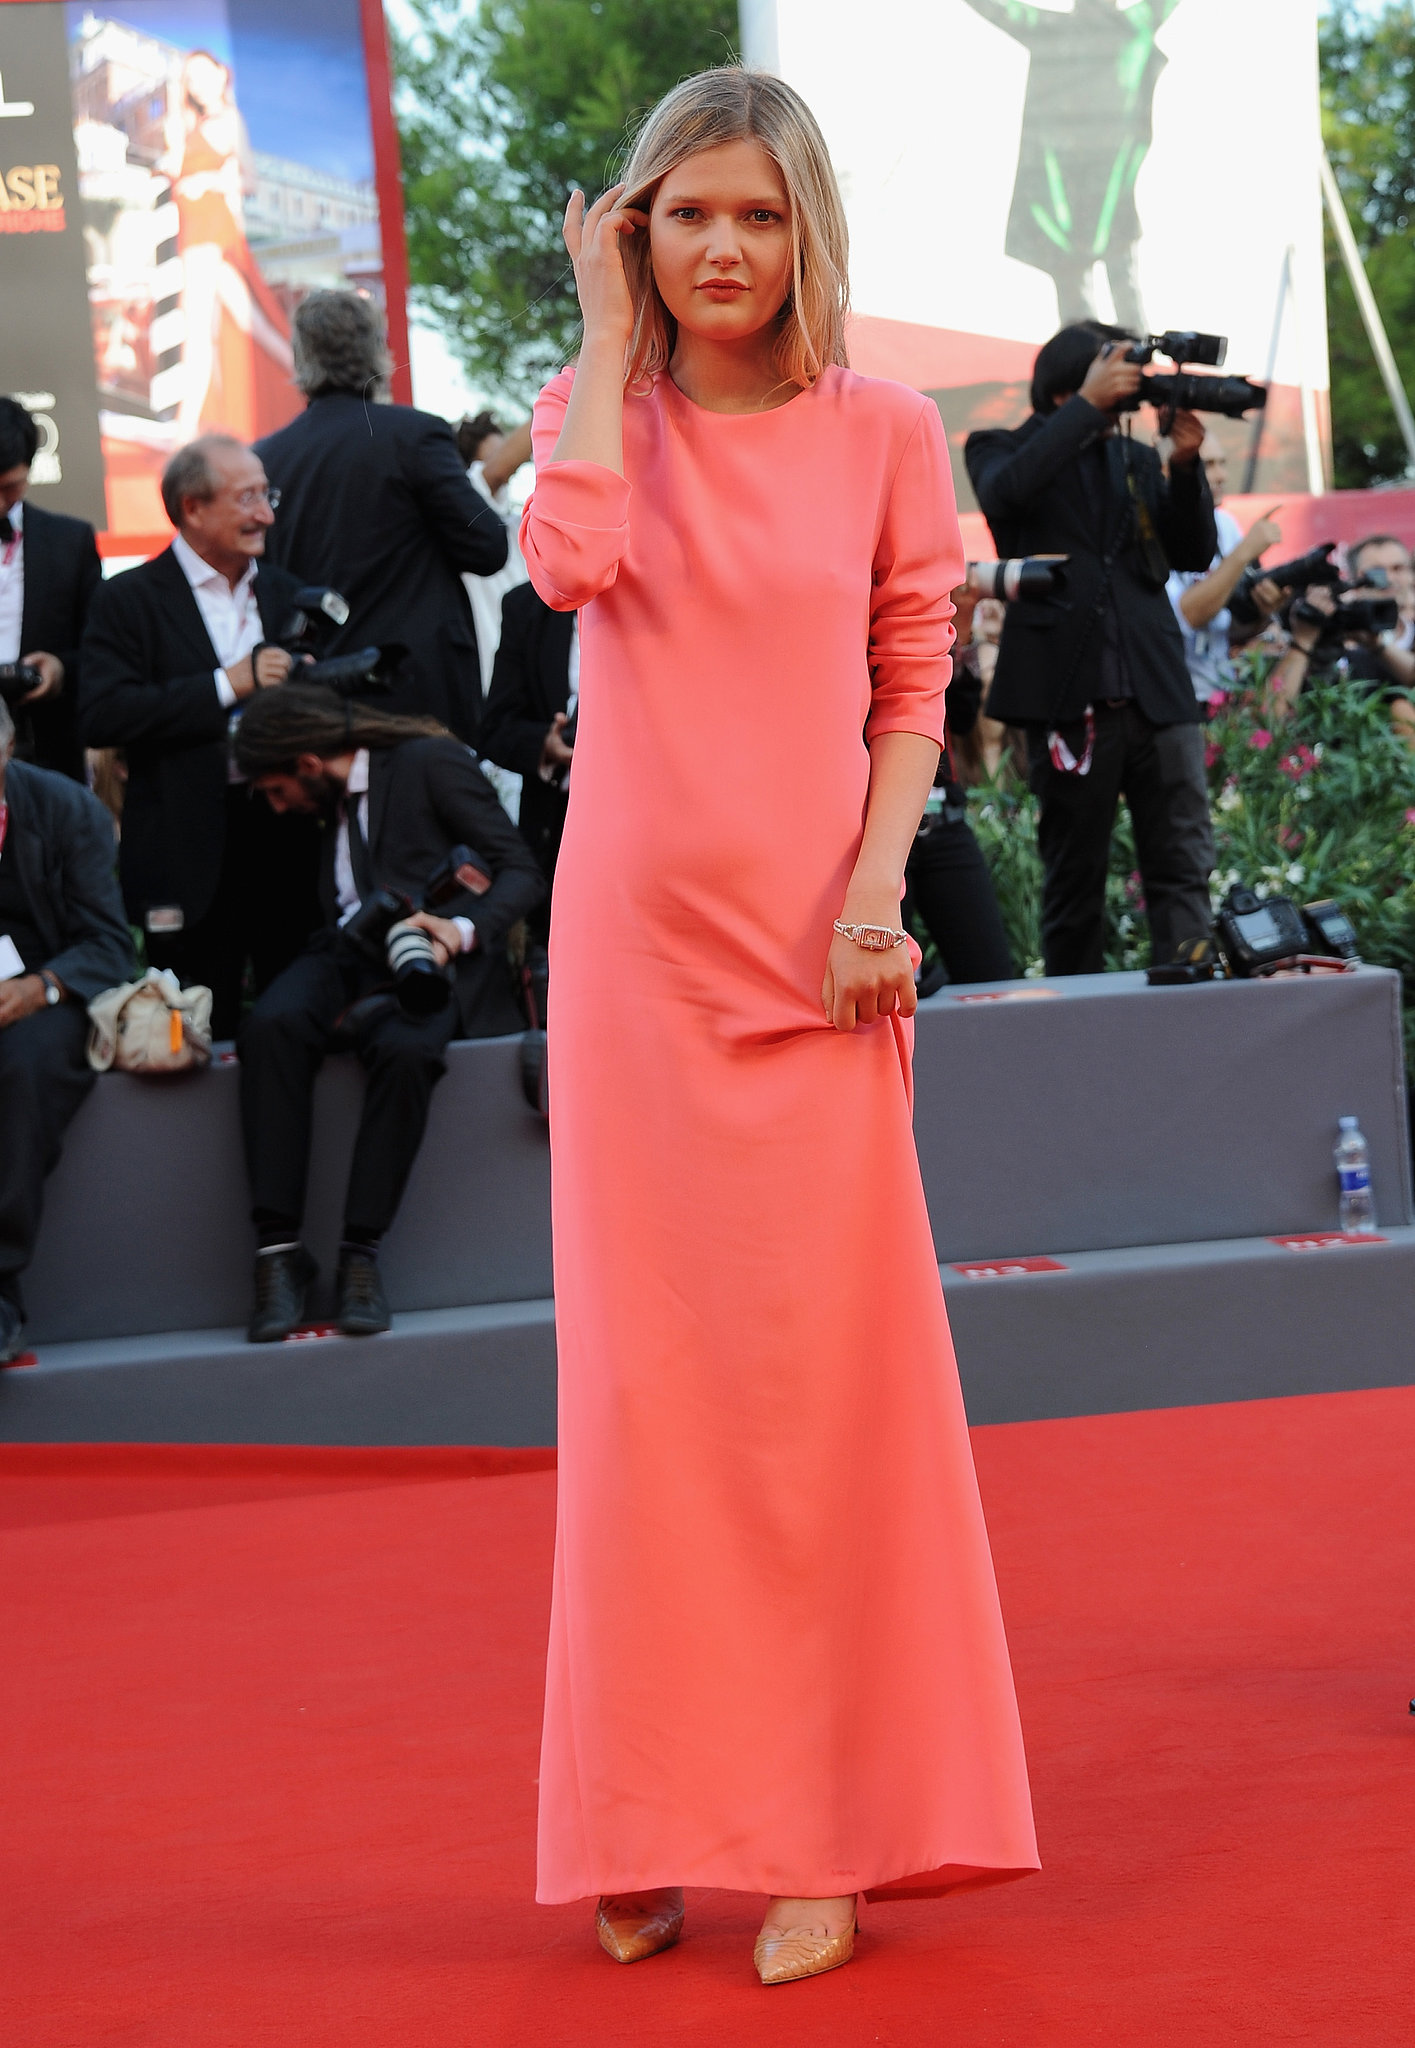 Sophie Kennedy Clark stood out in a relaxed Stella McCartney design on the Venice International Film Festival red carpet.